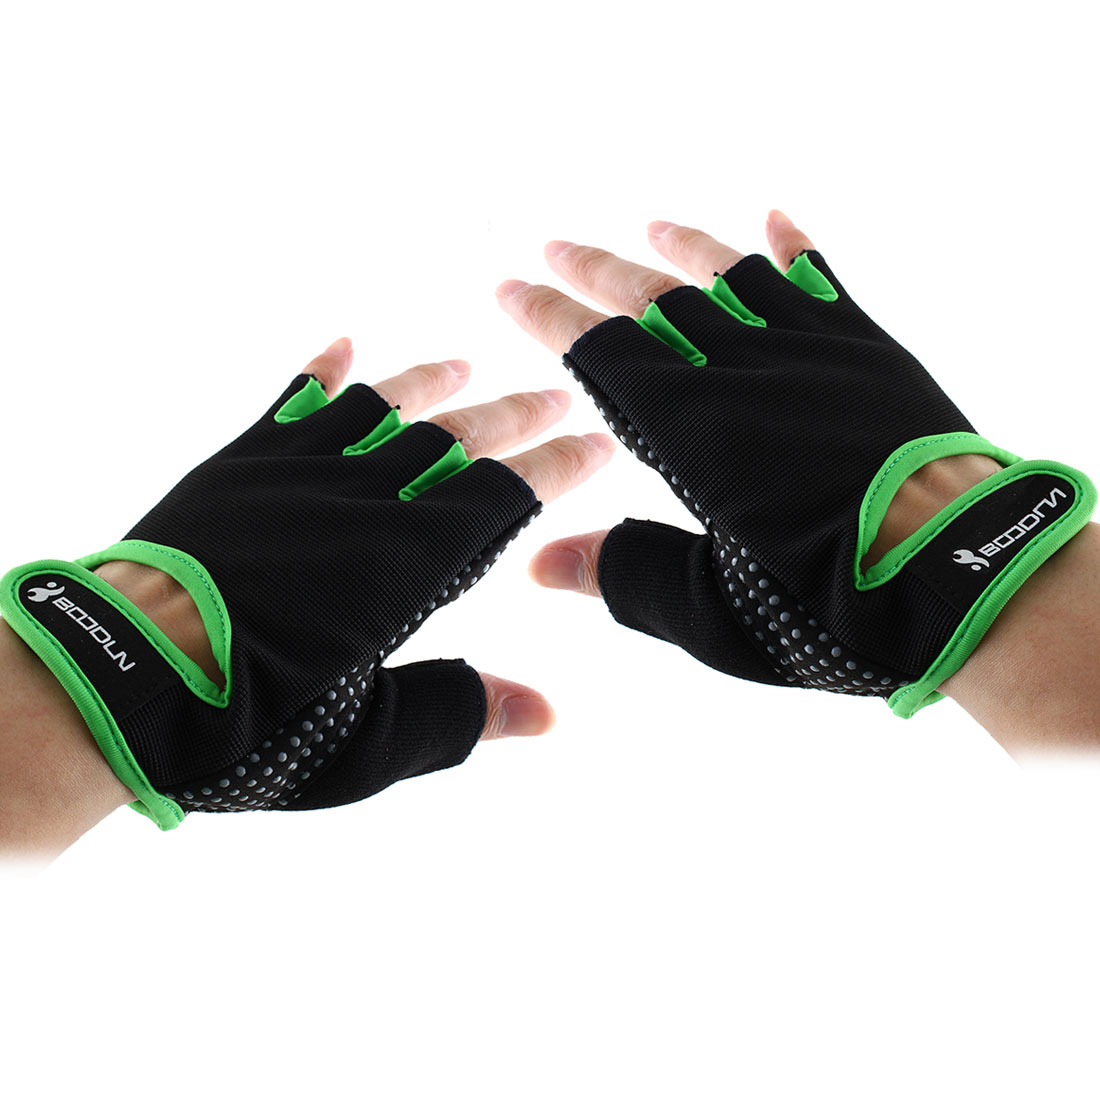 BOODUN Authorized Adult Unisex Spandex Adjustable Sports Training Workout Mittens Fitness Gloves Green S Pair